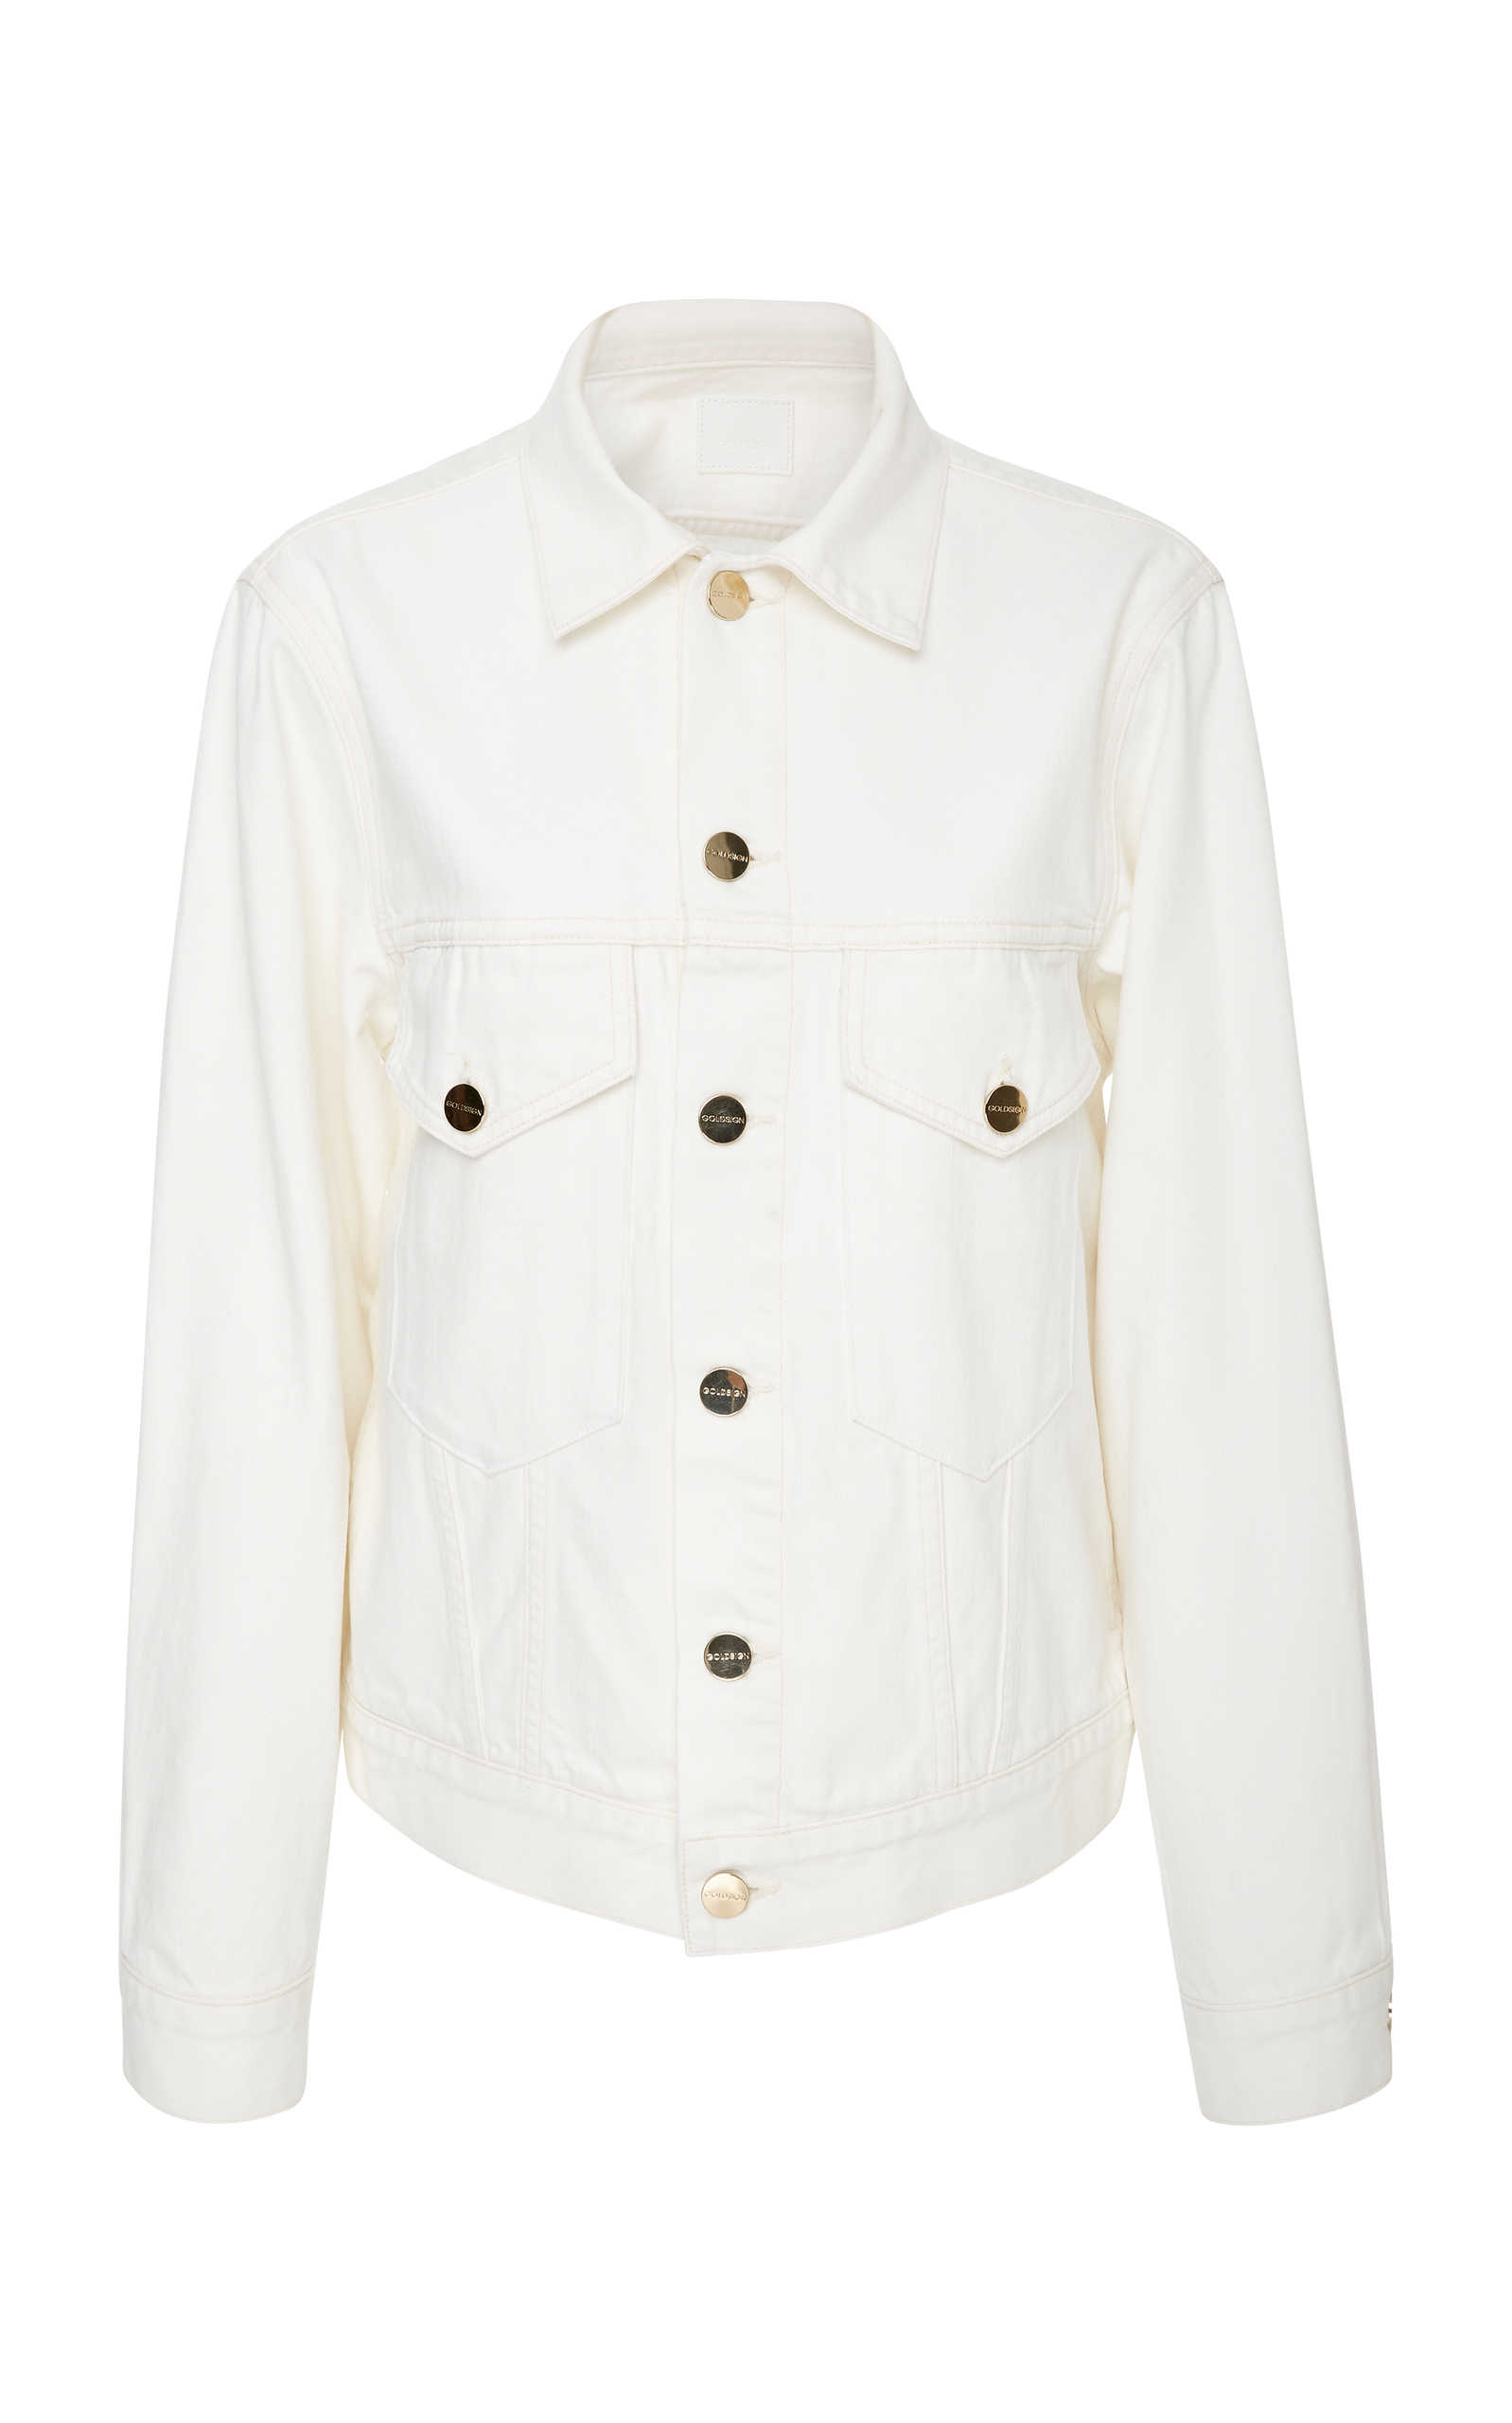 PATCH POCKET PEARL WHITE DENIM JACKET